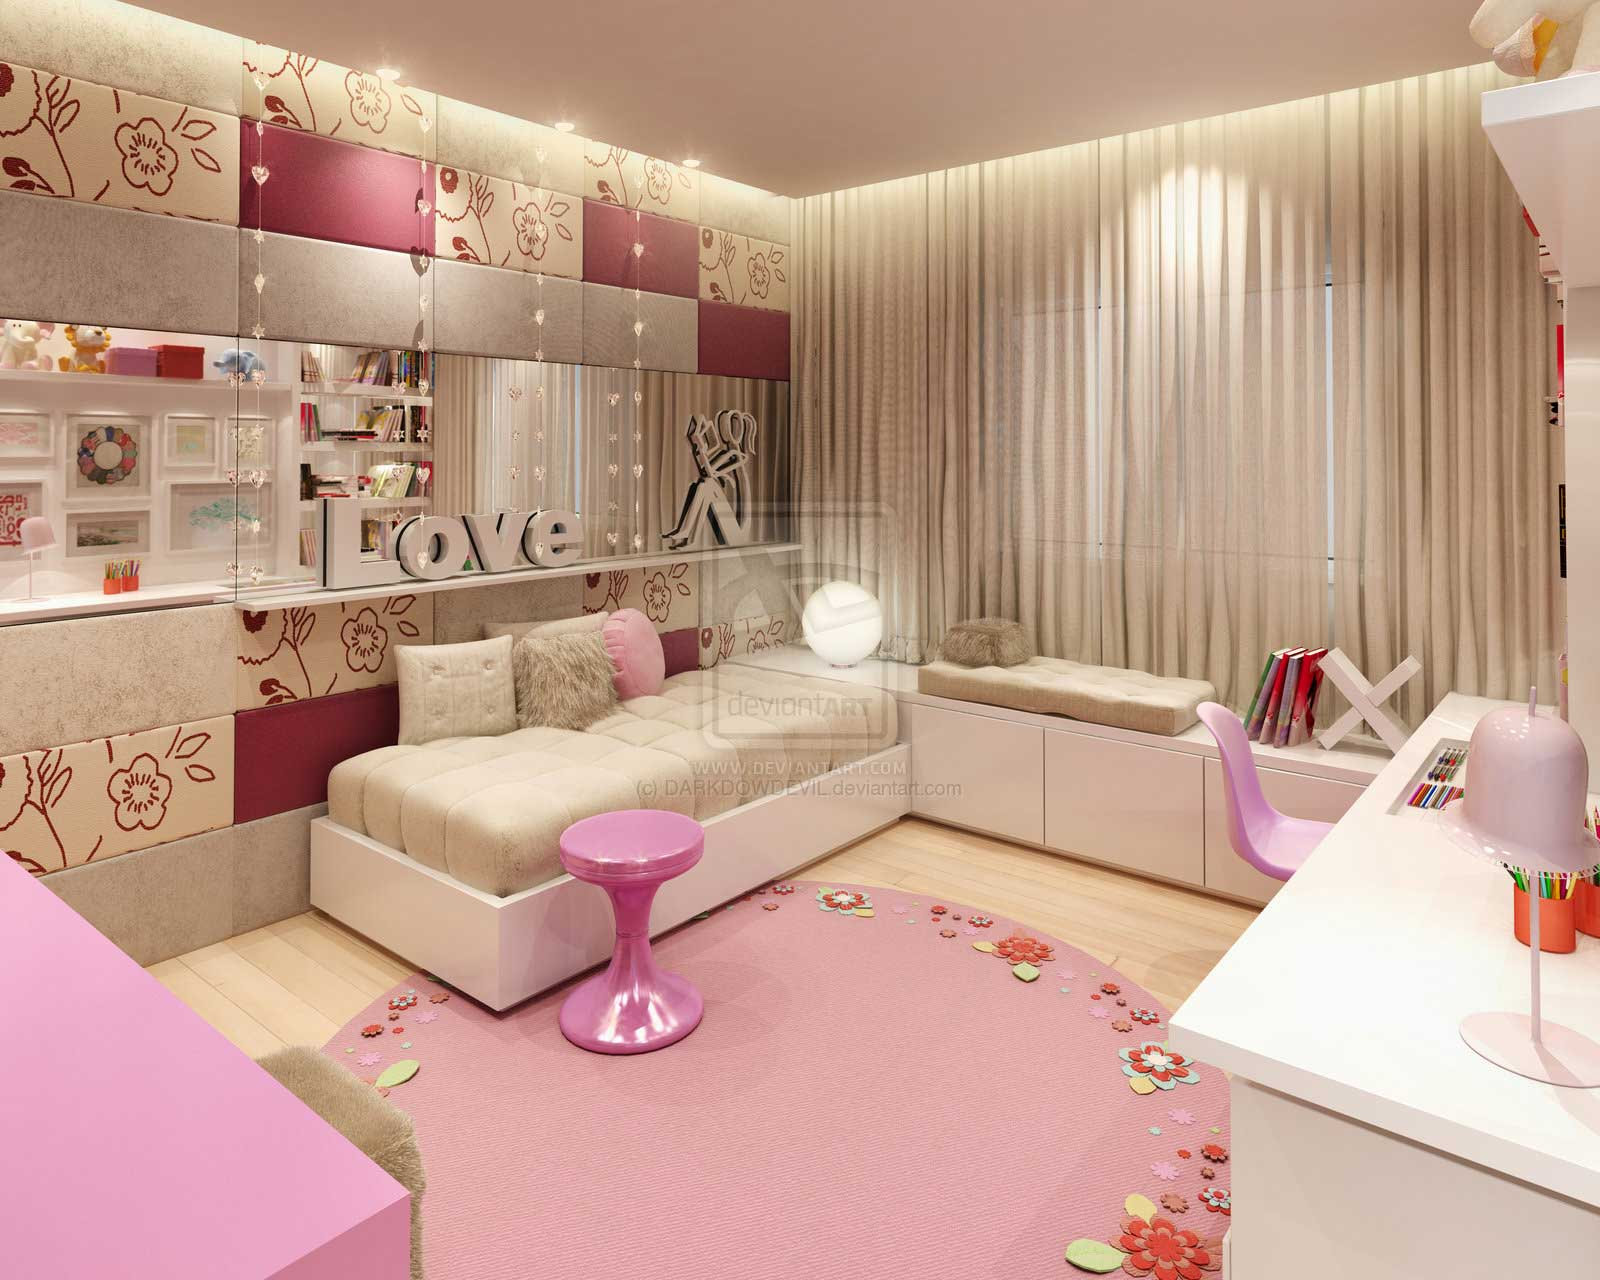 comfort pink girl bedroom by darkdowdevil interior design ideas. Black Bedroom Furniture Sets. Home Design Ideas